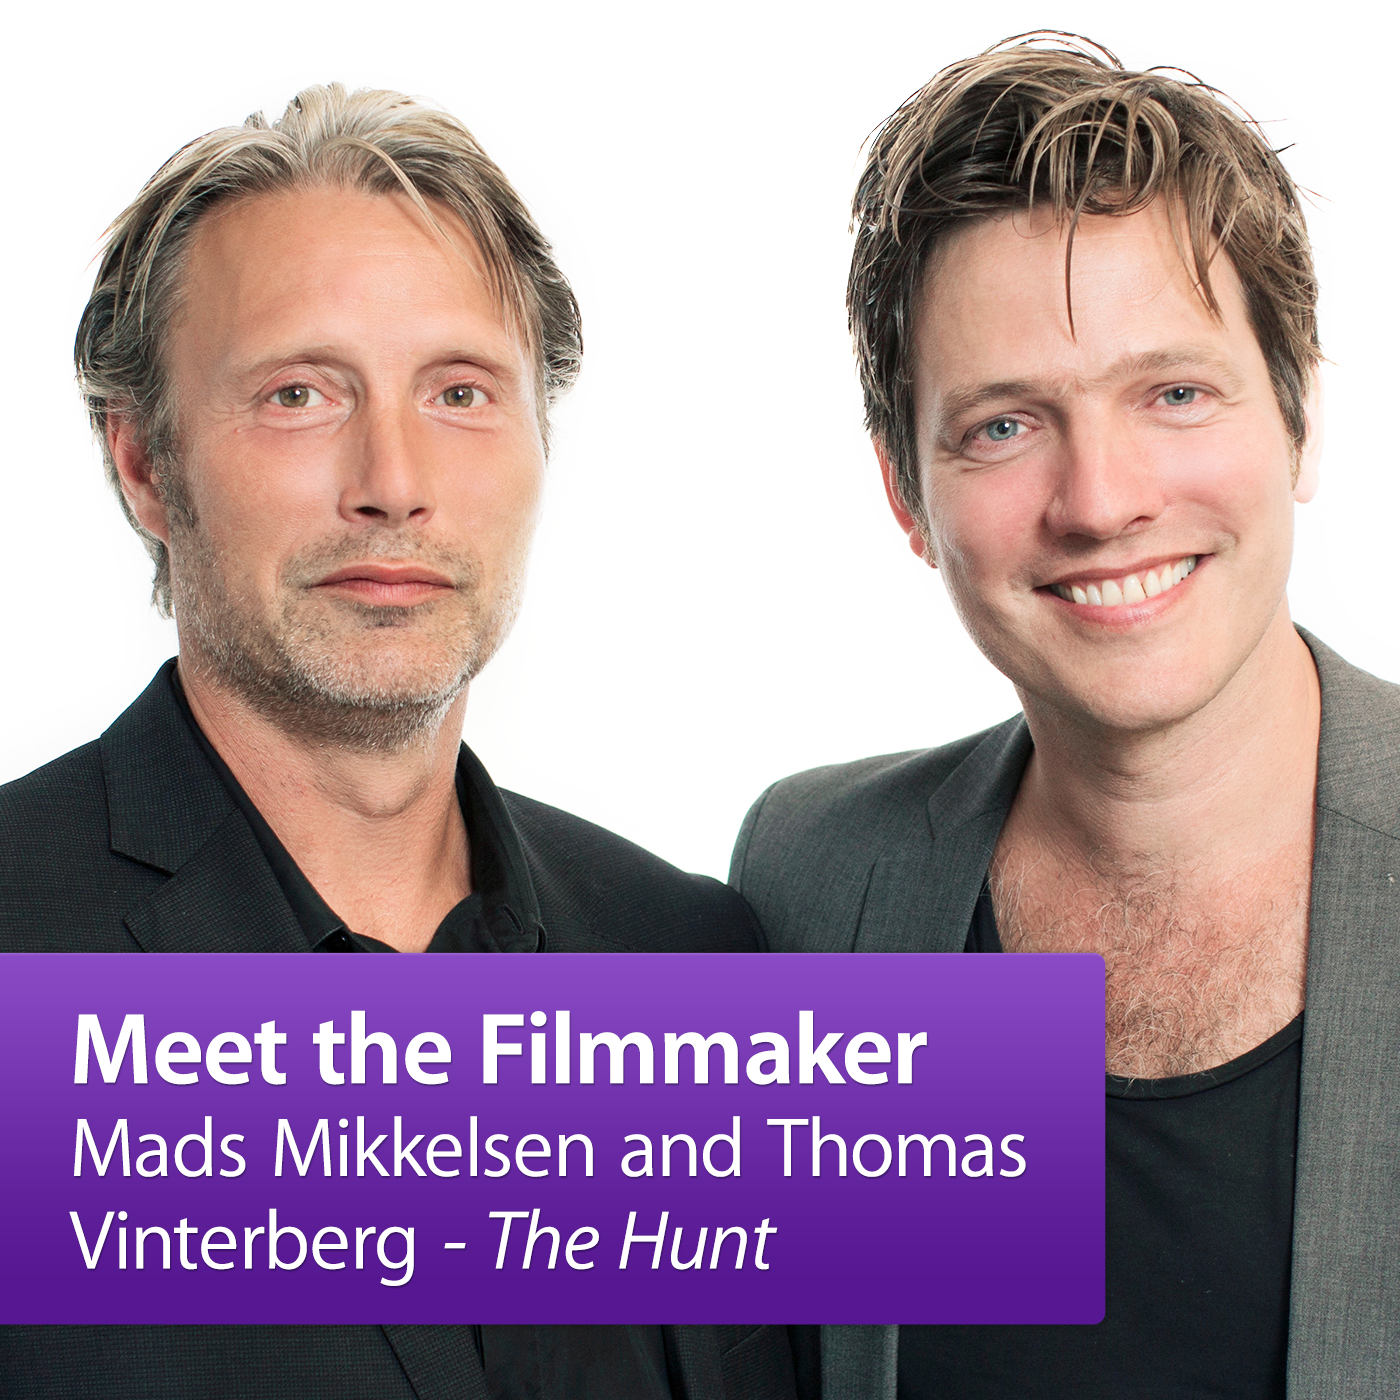 Mads Mikkelsen and Thomas Vinterberg: Meet the Filmmaker